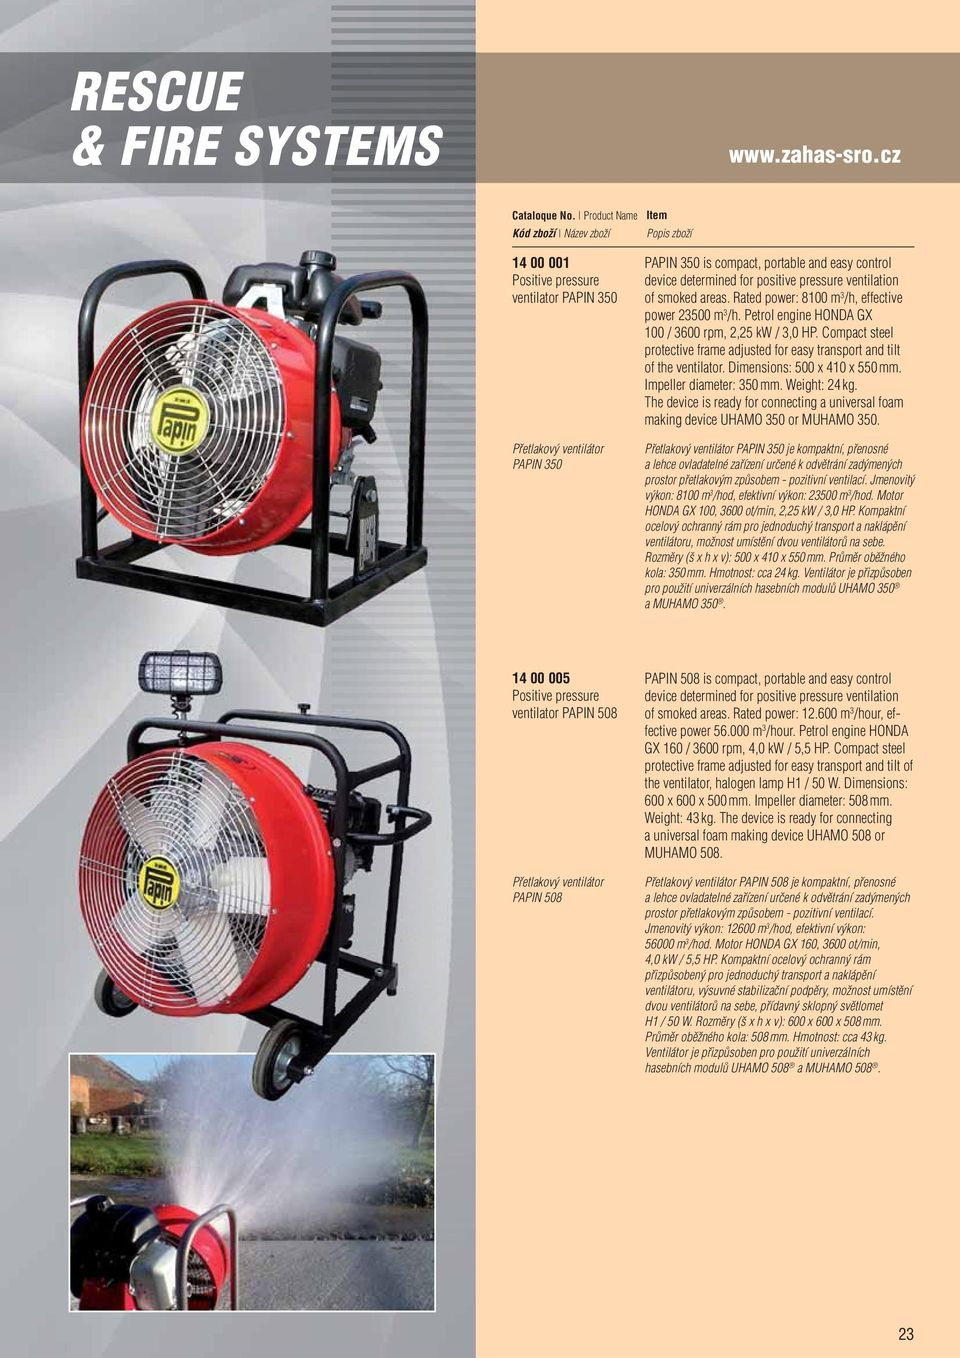 Rated power: 8100 m 3 /h, effective power 23500 m 3 /h. Petrol engine HONDA GX 100 / 3600 rpm, 2,25 kw / 3,0 HP. Compact steel protective frame adjusted for easy transport and tilt of the ventilator.